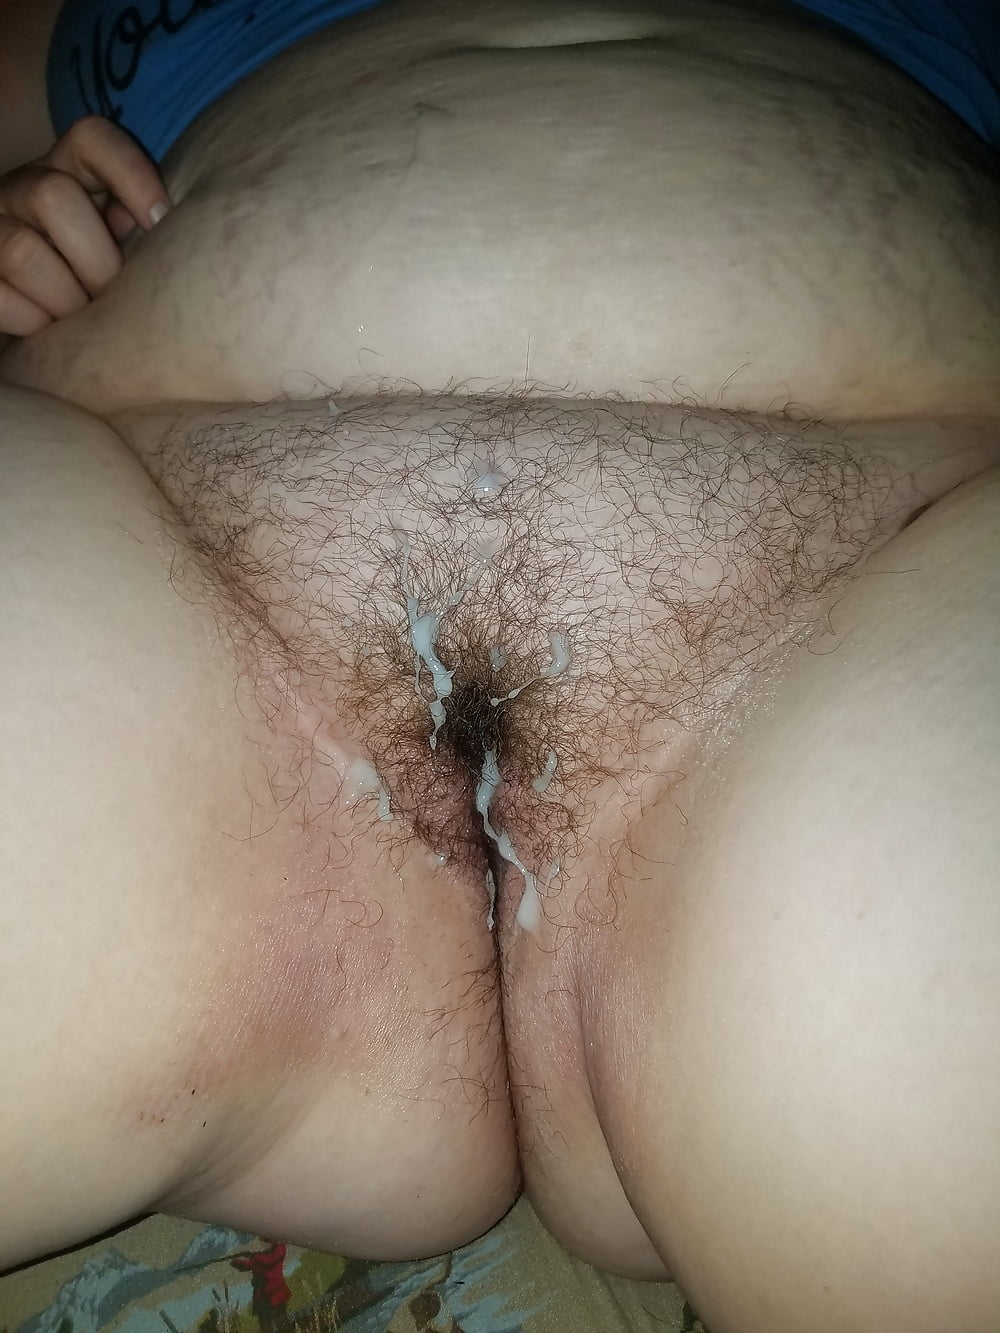 Shaved pussie pictures